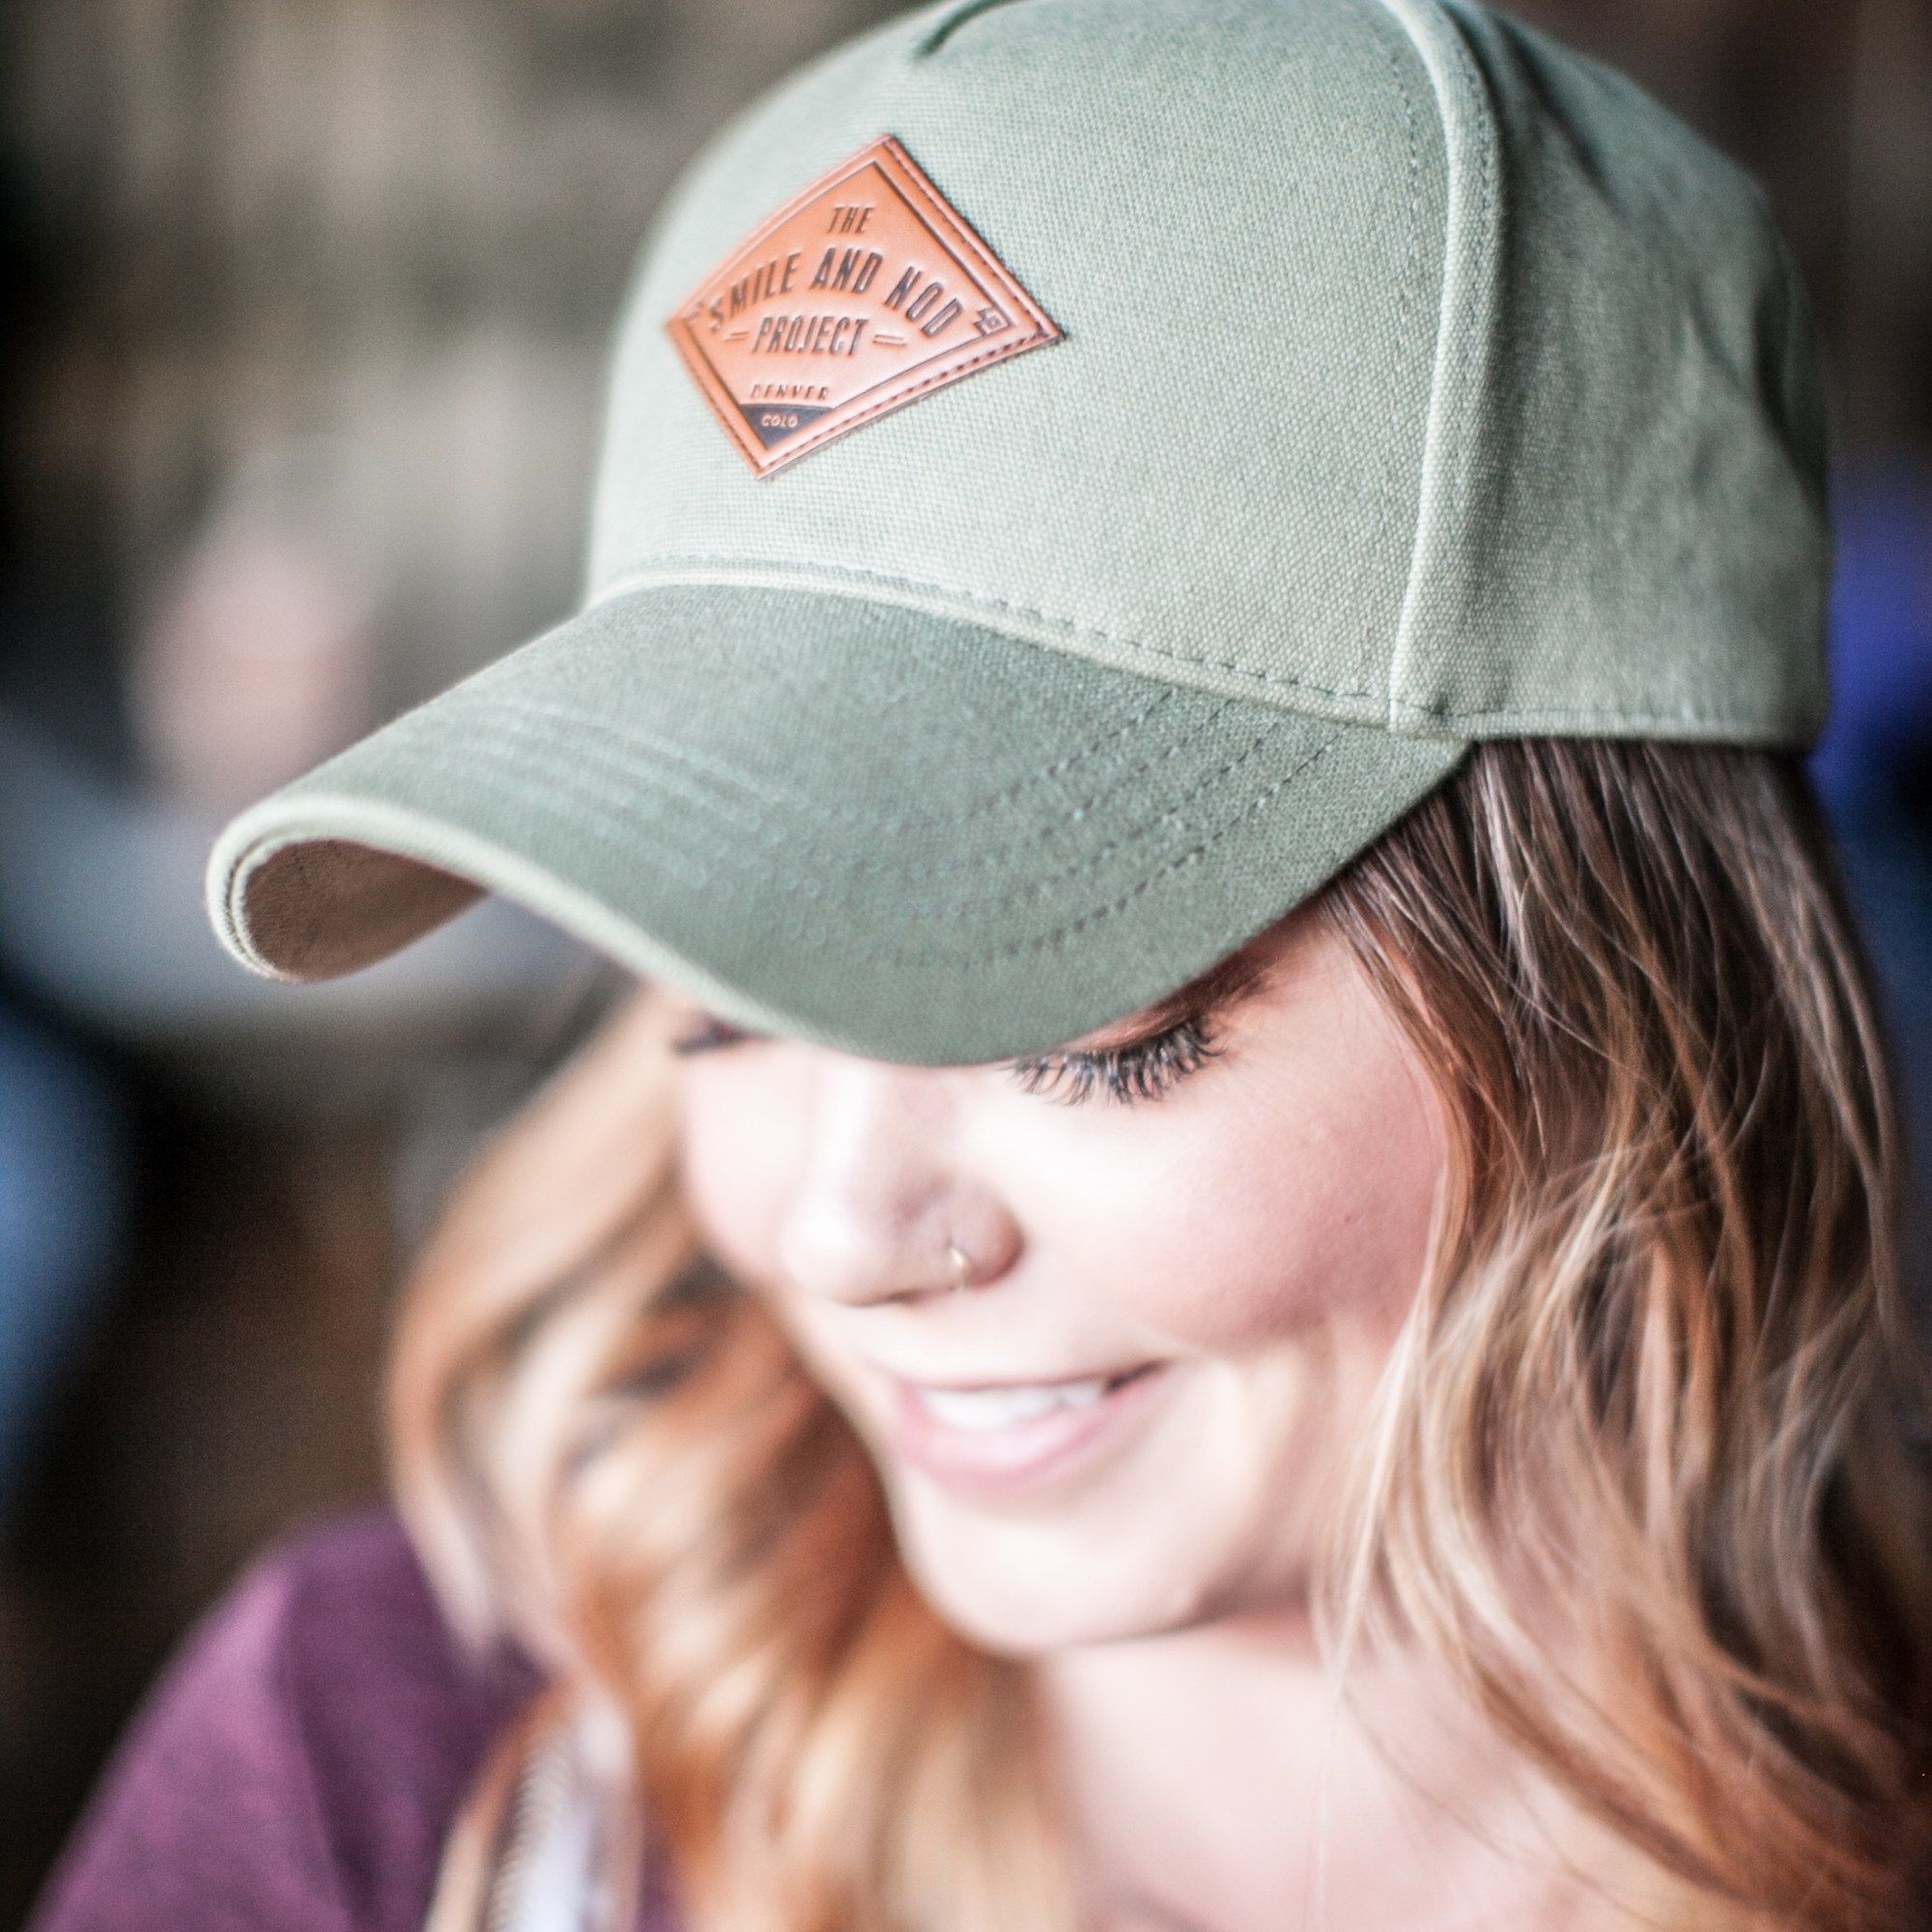 87d612fb668 Leather patch hat baseball cap. The Smile and Nod Project baseball hat.  TSNP Olive Grant Cap.